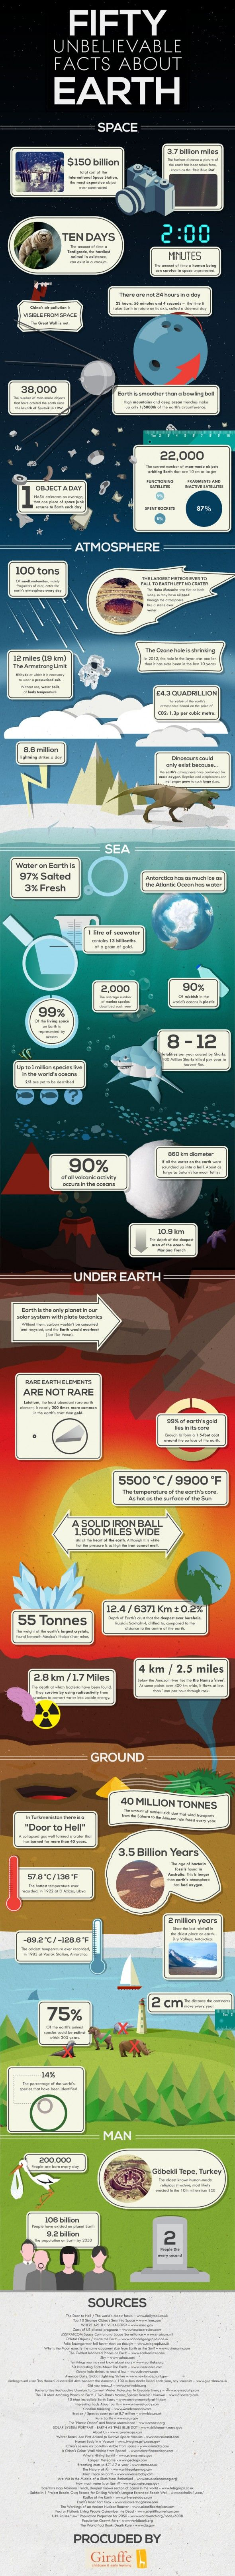 50-facts-about-earth-infographic.jpg 590×6,459 pixels